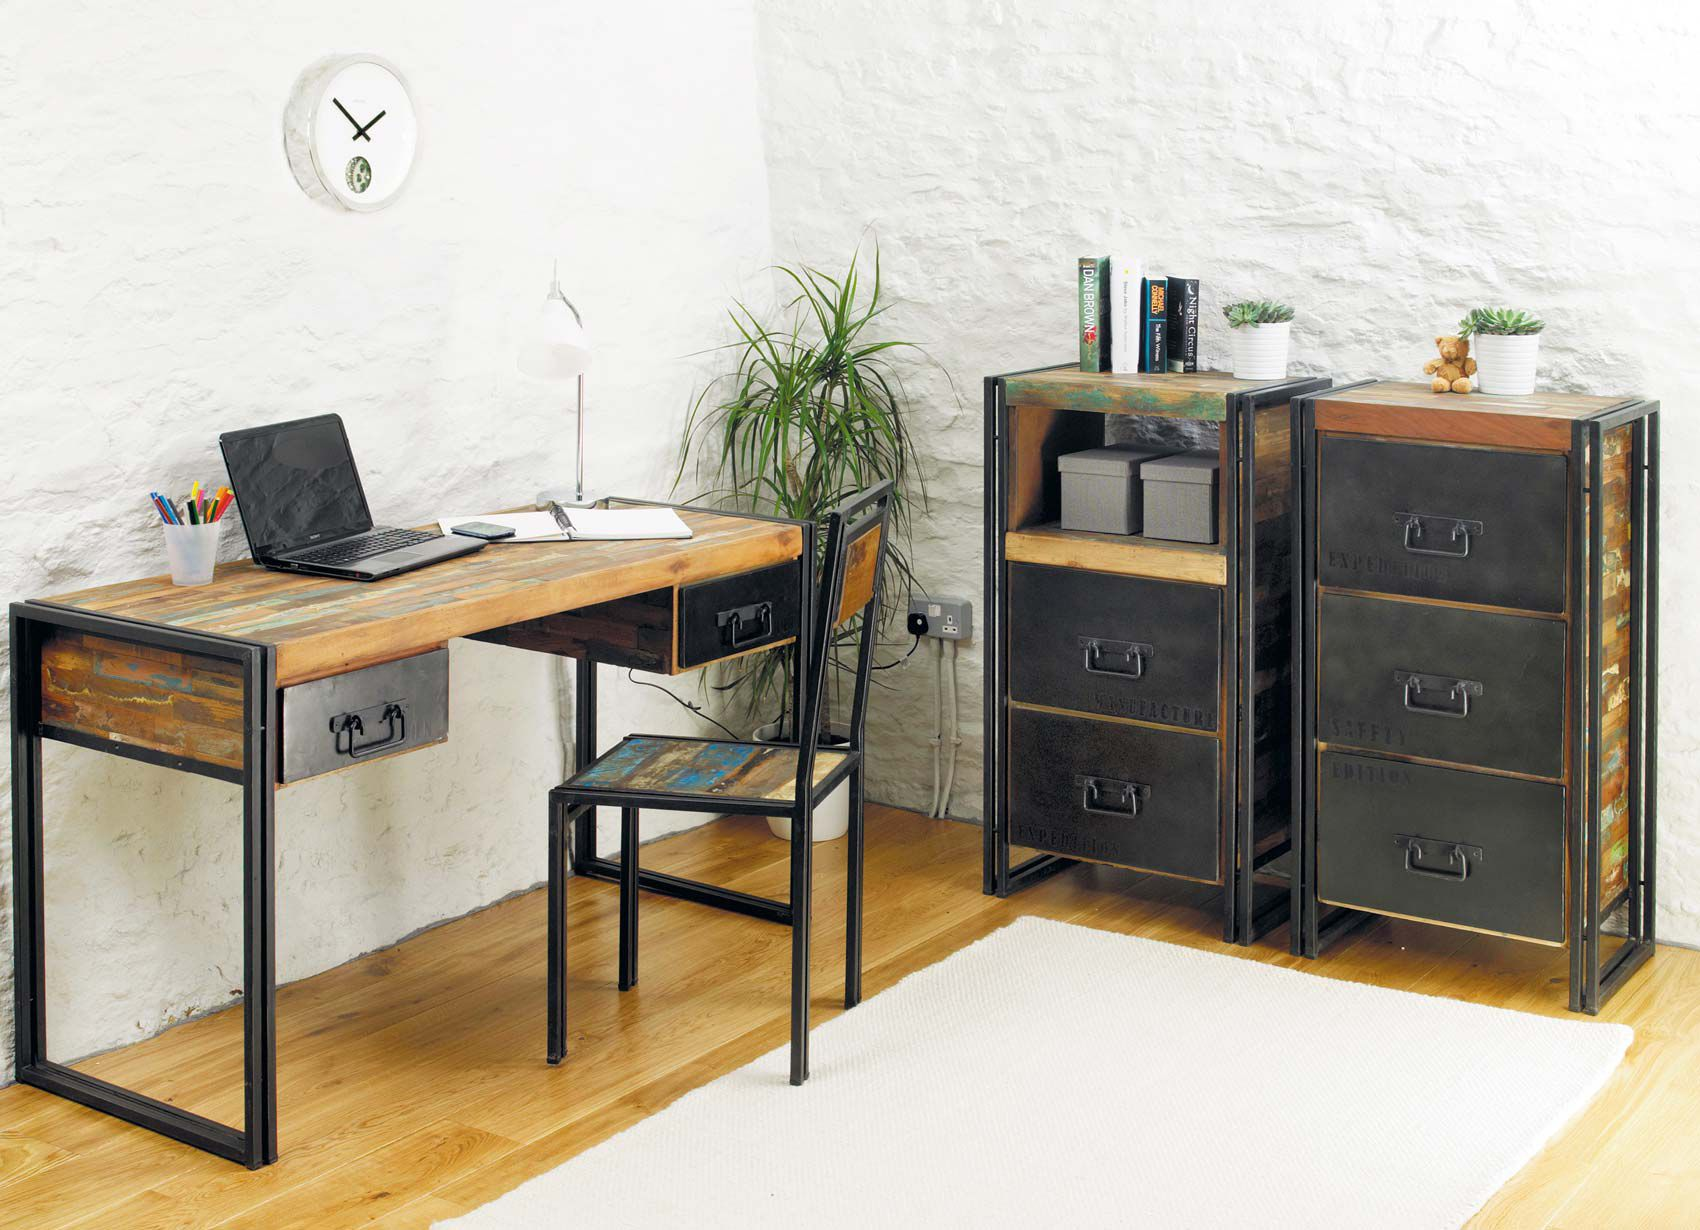 industrial chic furniture sets for office | Office | Pinterest ...